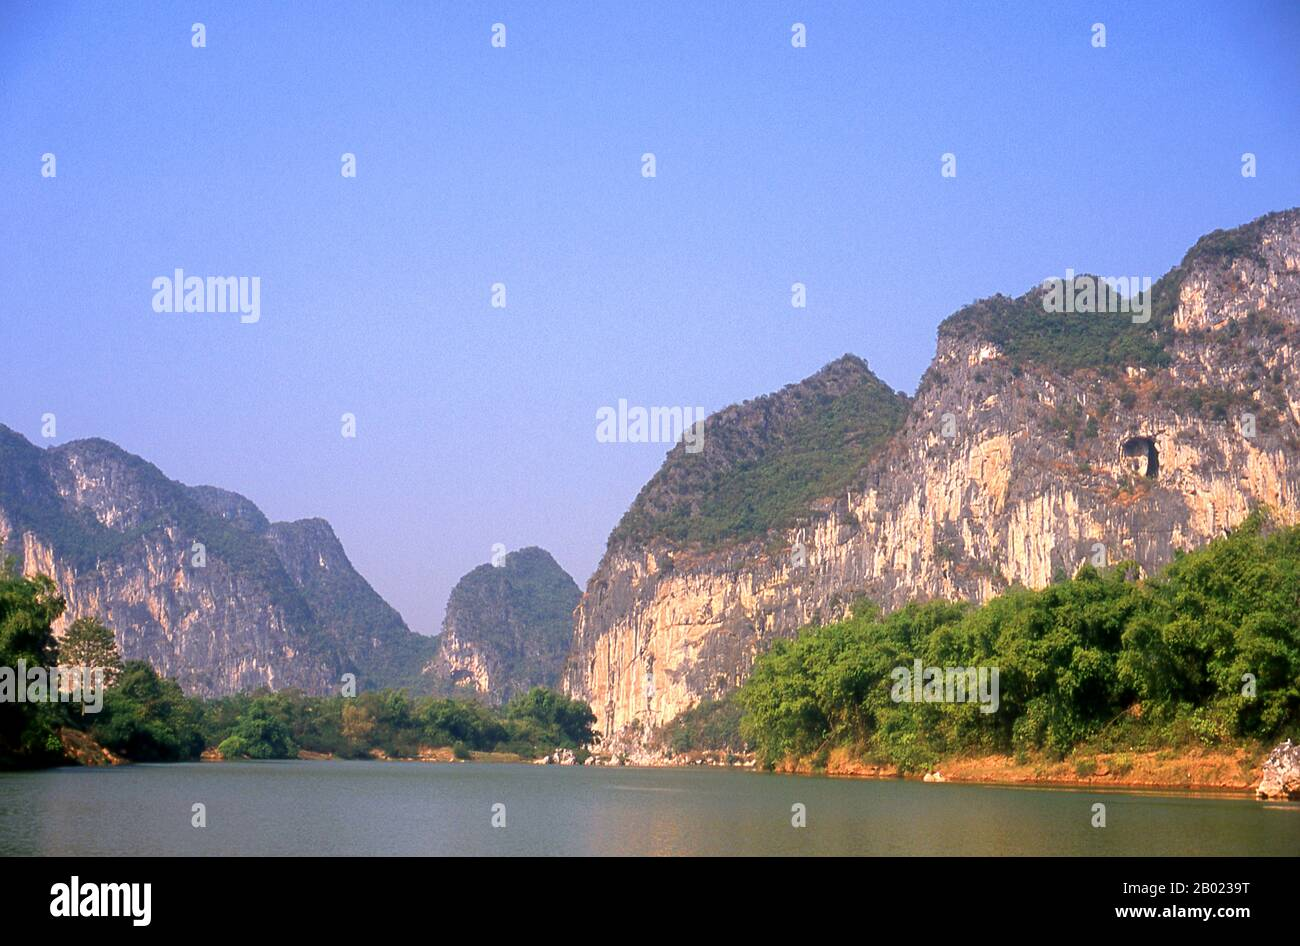 The Zuojiang or Zuo River (Chinese: 左江; pinyin: ZuǒJiāng; literally 'Left River') is a river in Guangxi Province, southern China. It flows into the South China Sea. Stock Photo